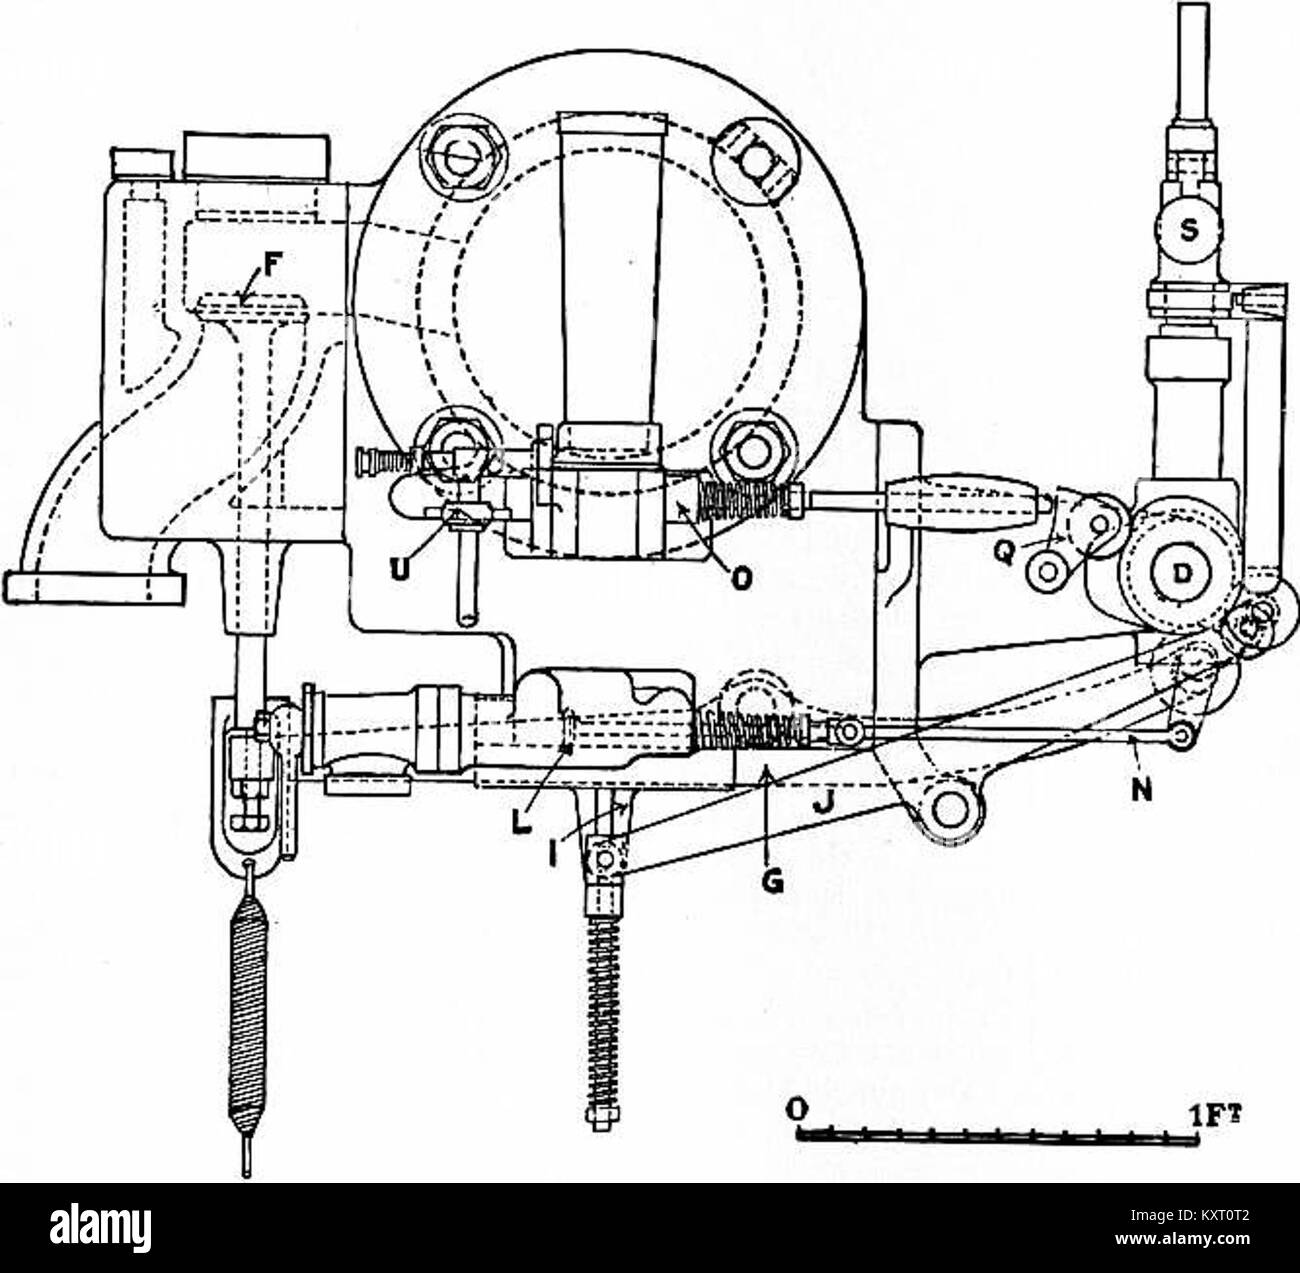 End Elevation of Otto Cycle Engine -